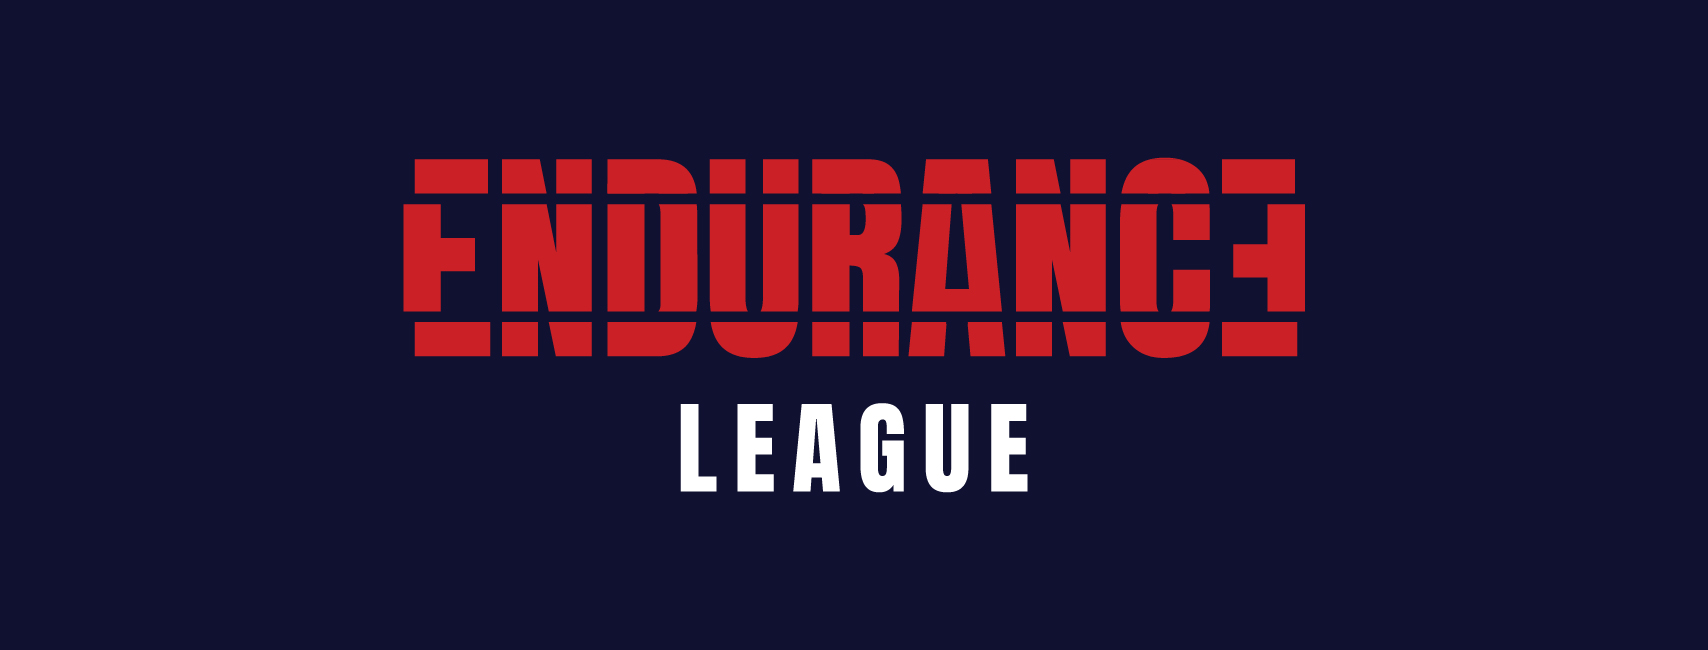 endurance-league-icon